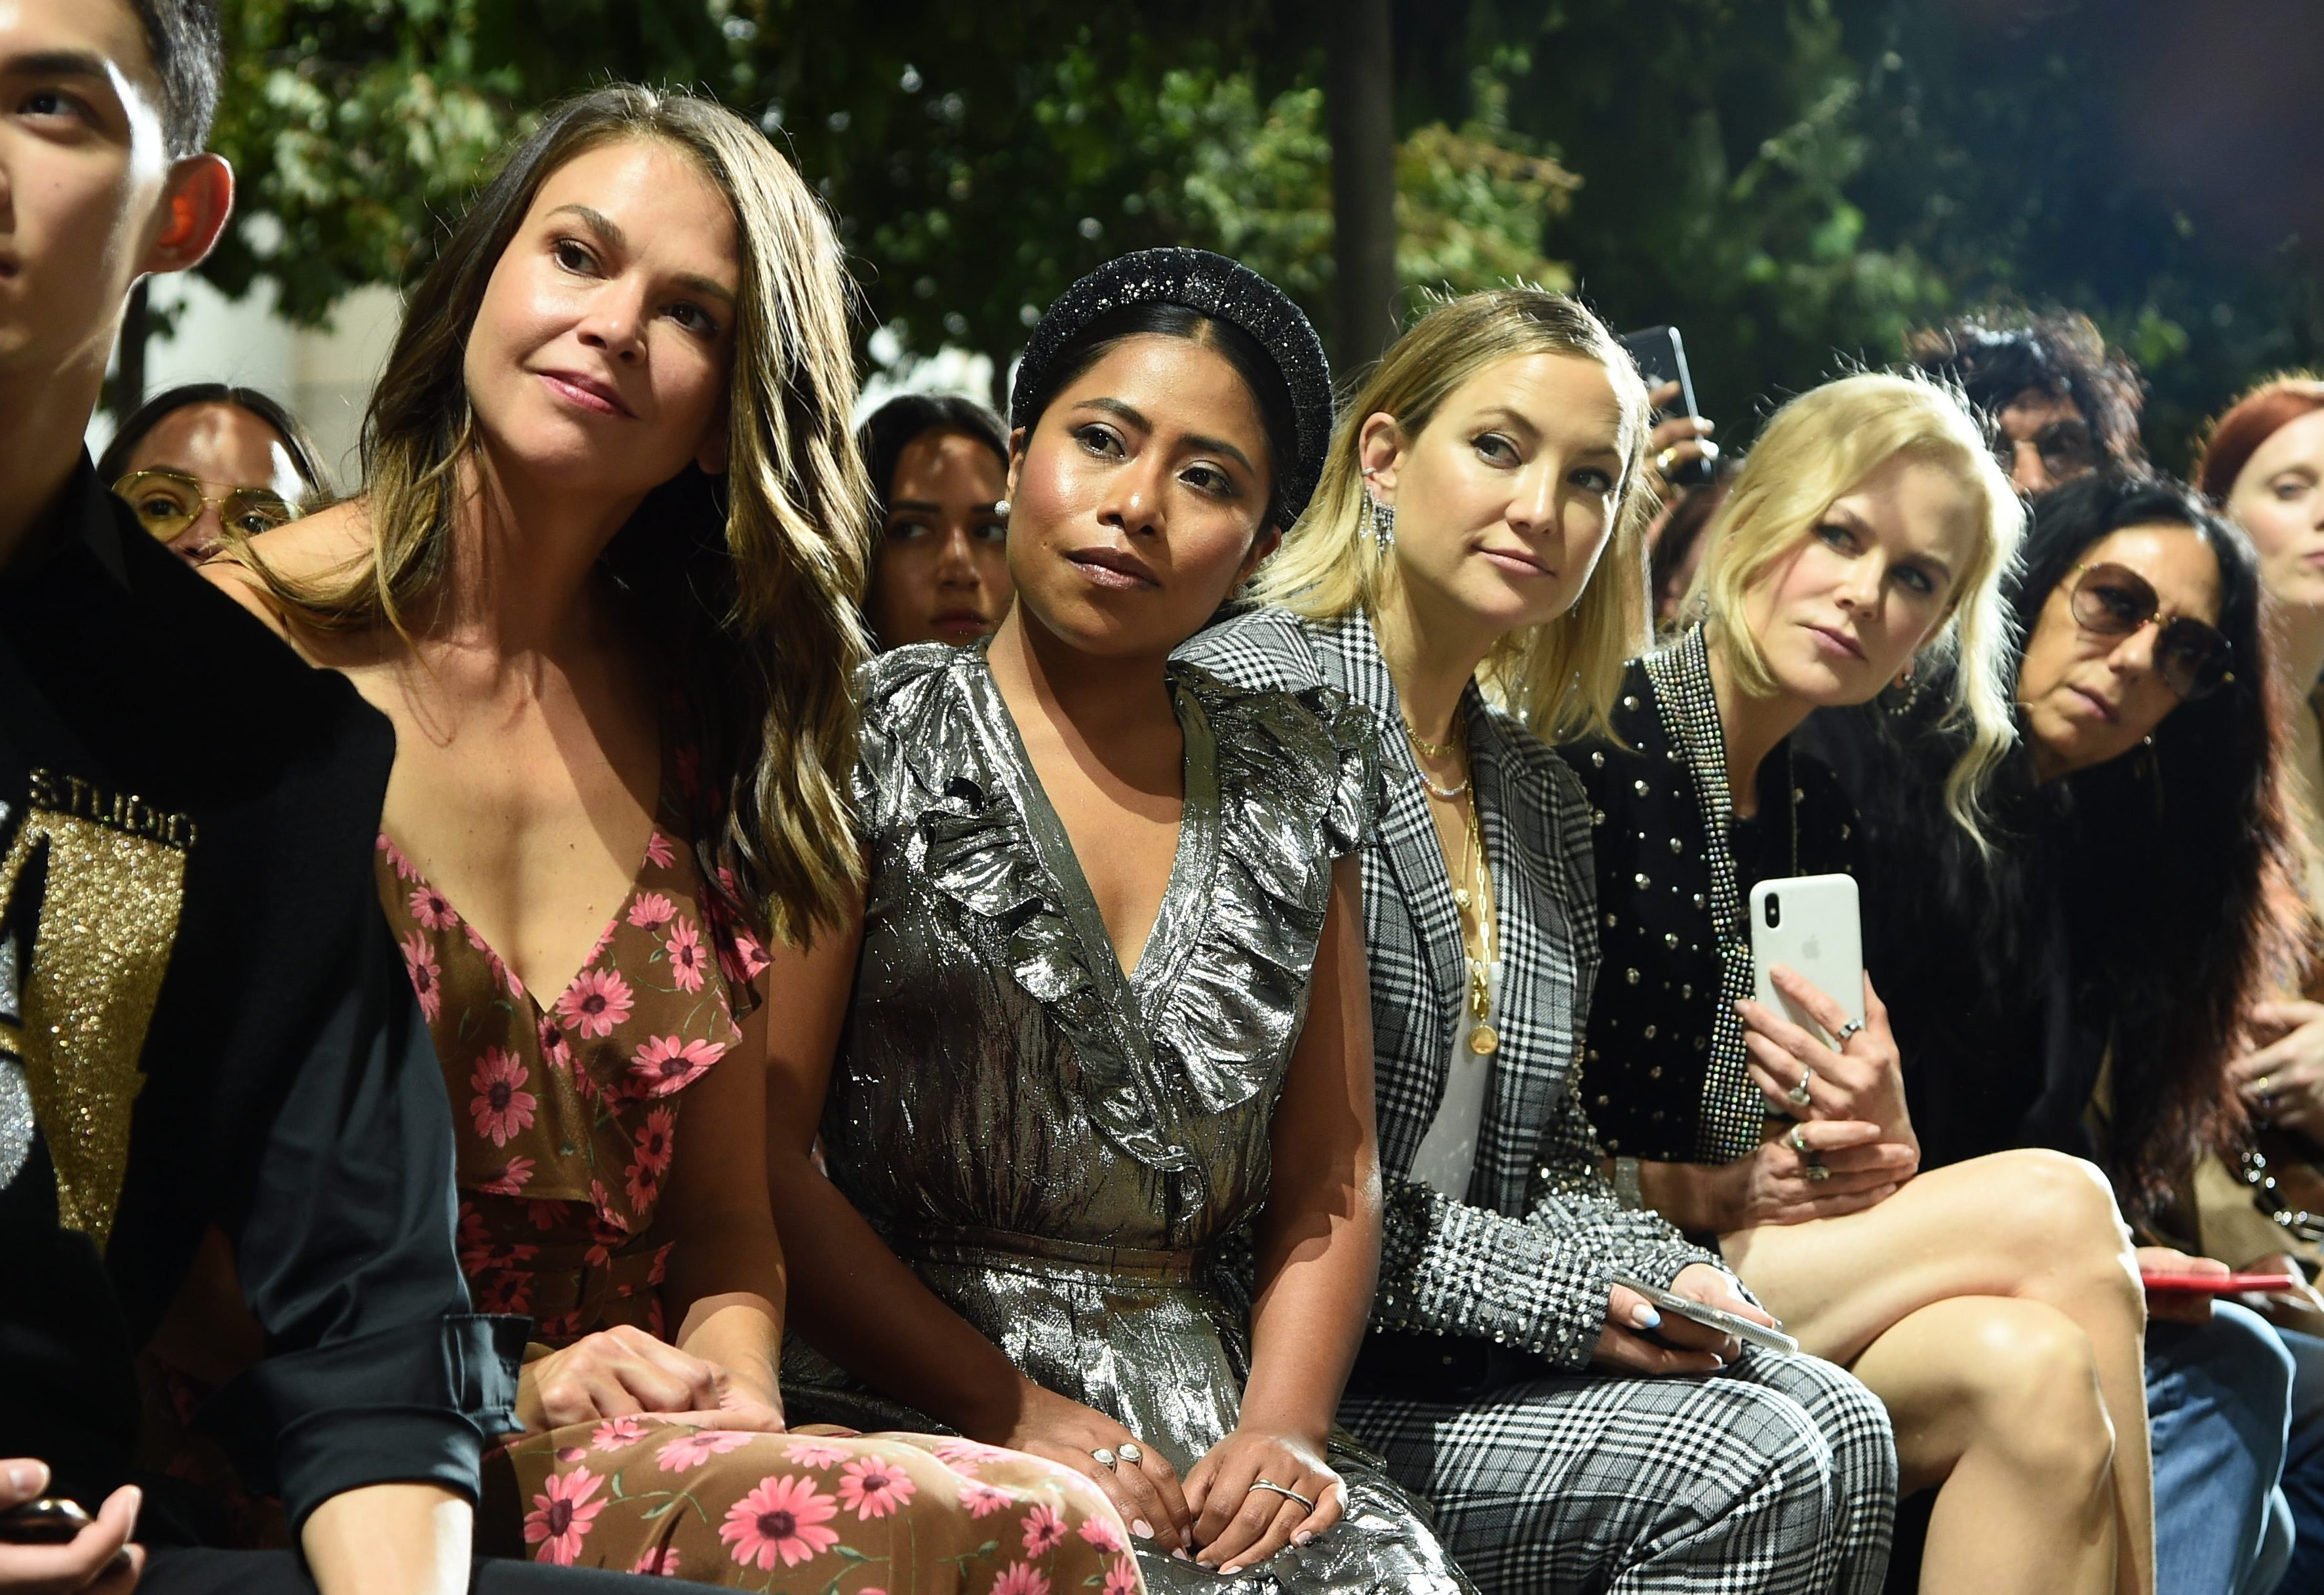 Yalitza Aparicio Embraces the Term 'Prieta,' Sparks Discussion on the Word's Meaning